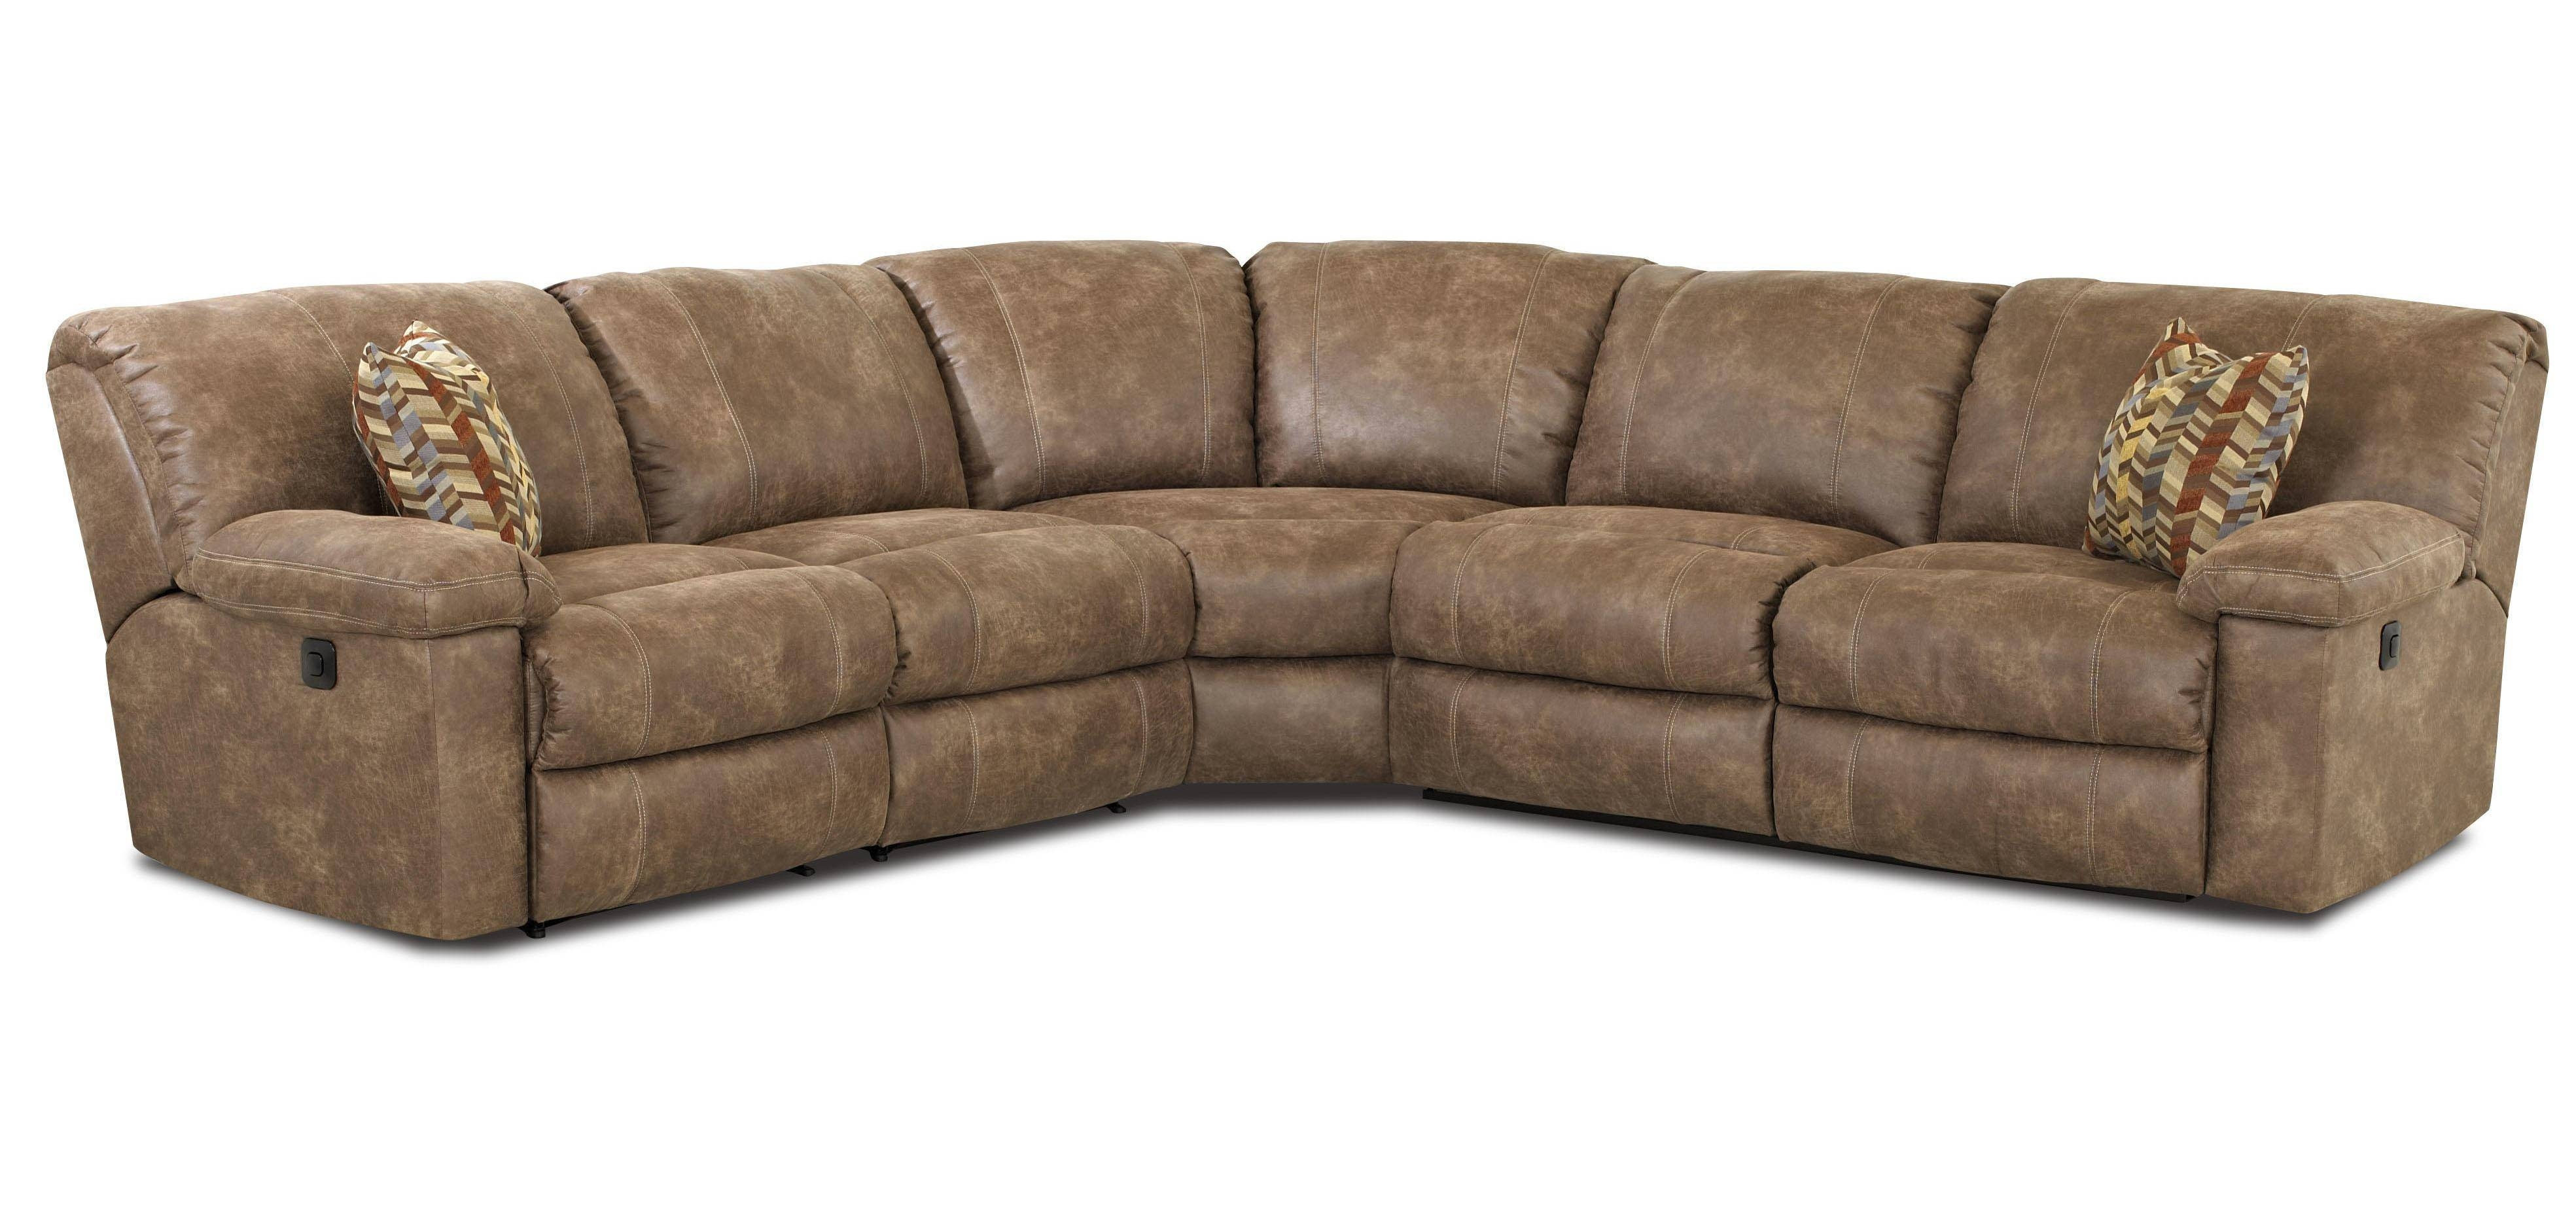 Furniture: Interesting Living Room Interior Using Large Sectional intended for Extra Large Leather Sectional Sofas (Image 12 of 15)